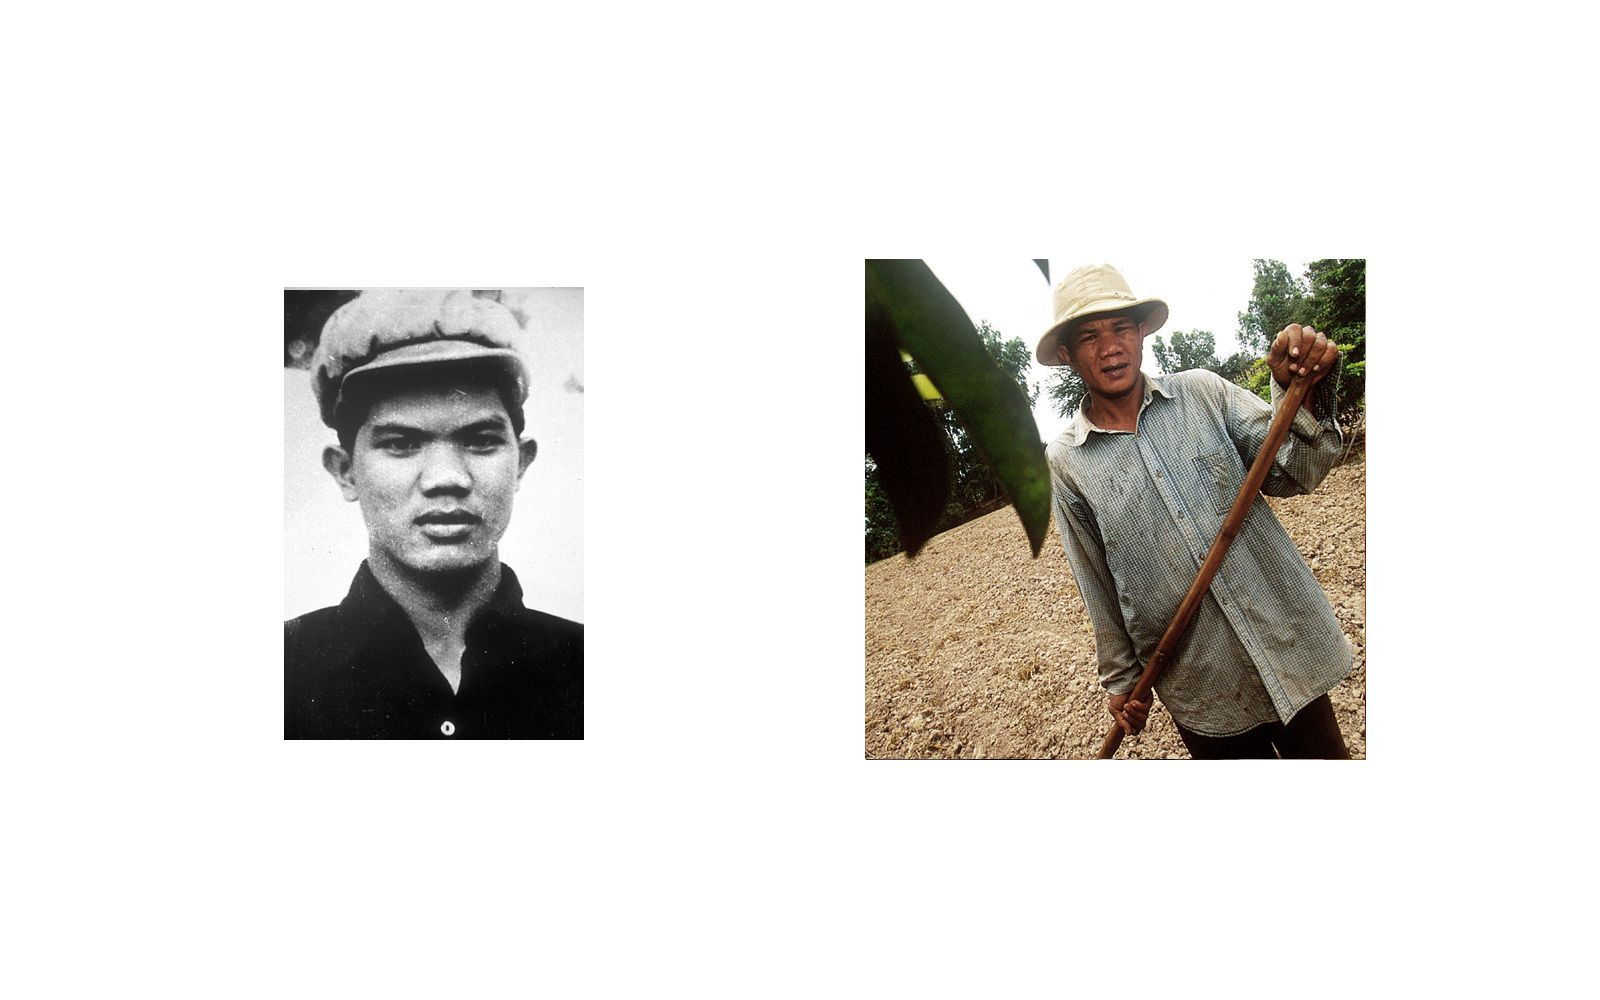 Meas Kry, a former Khmer Rouge soldier, was a guard at Tuol Sleng(S-21) Prison.